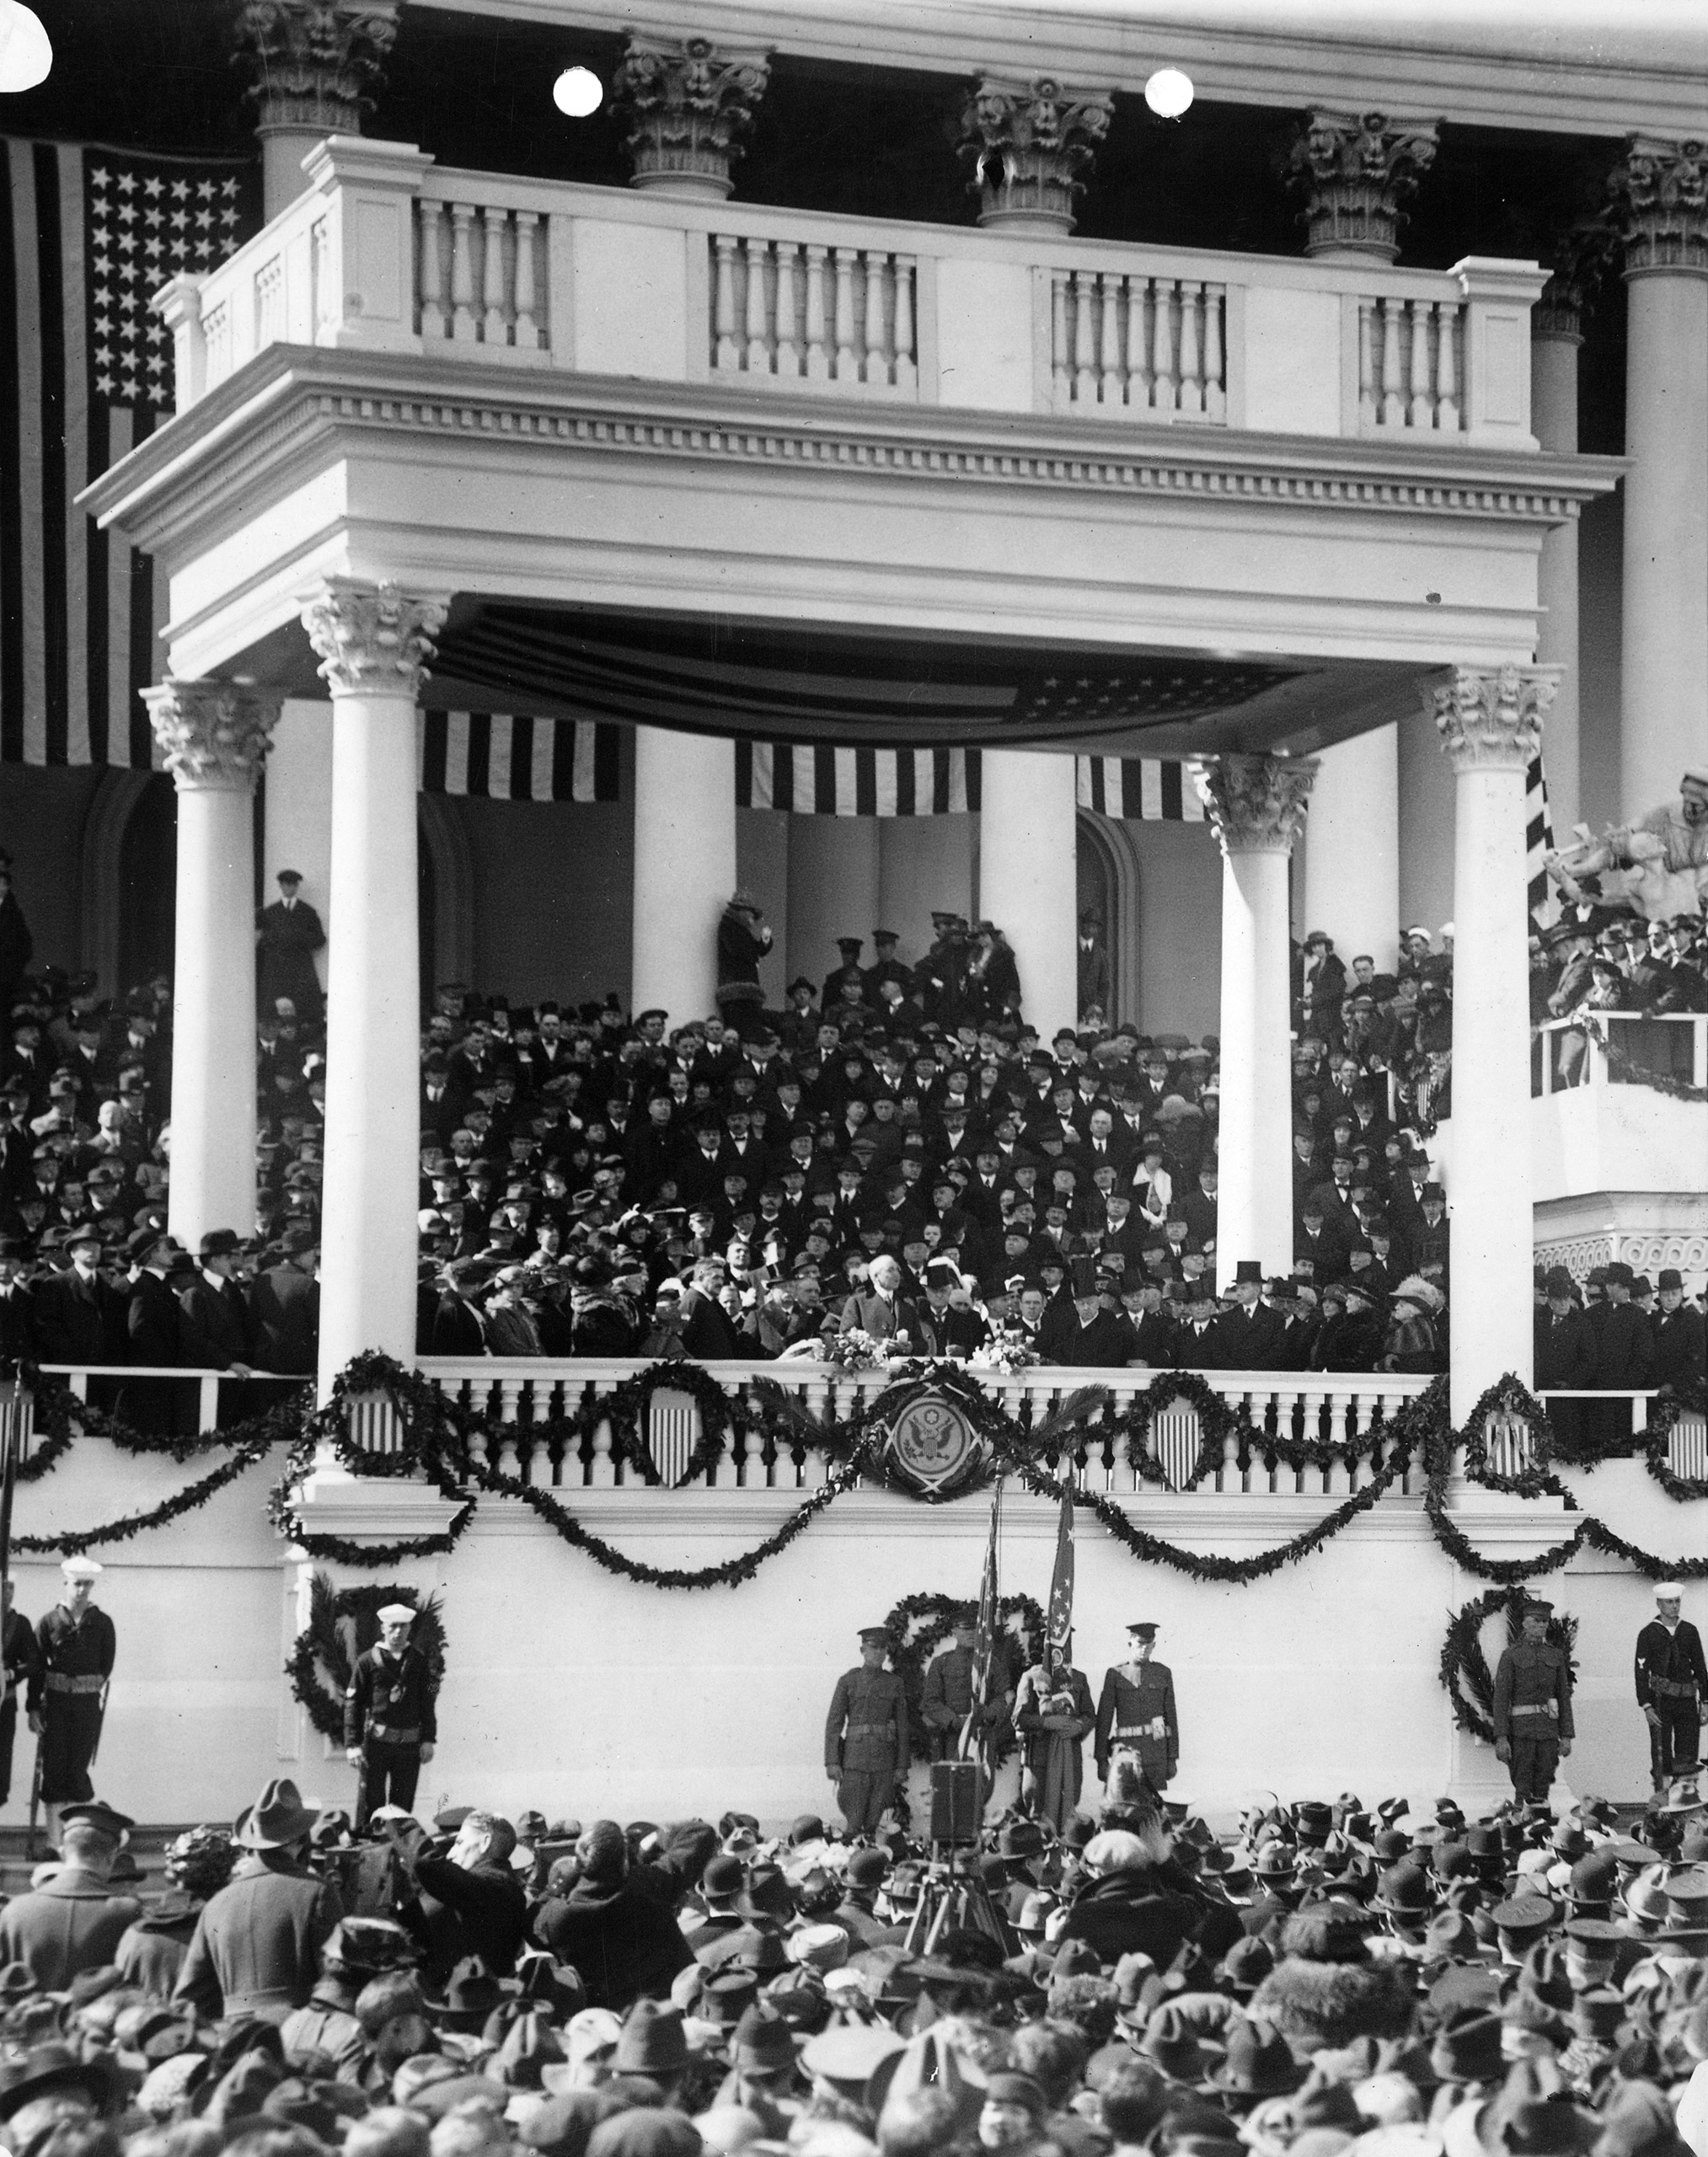 Warren G. Harding delivering his inaugural address on east portico of U.S. Capitol, March 4, 1921.